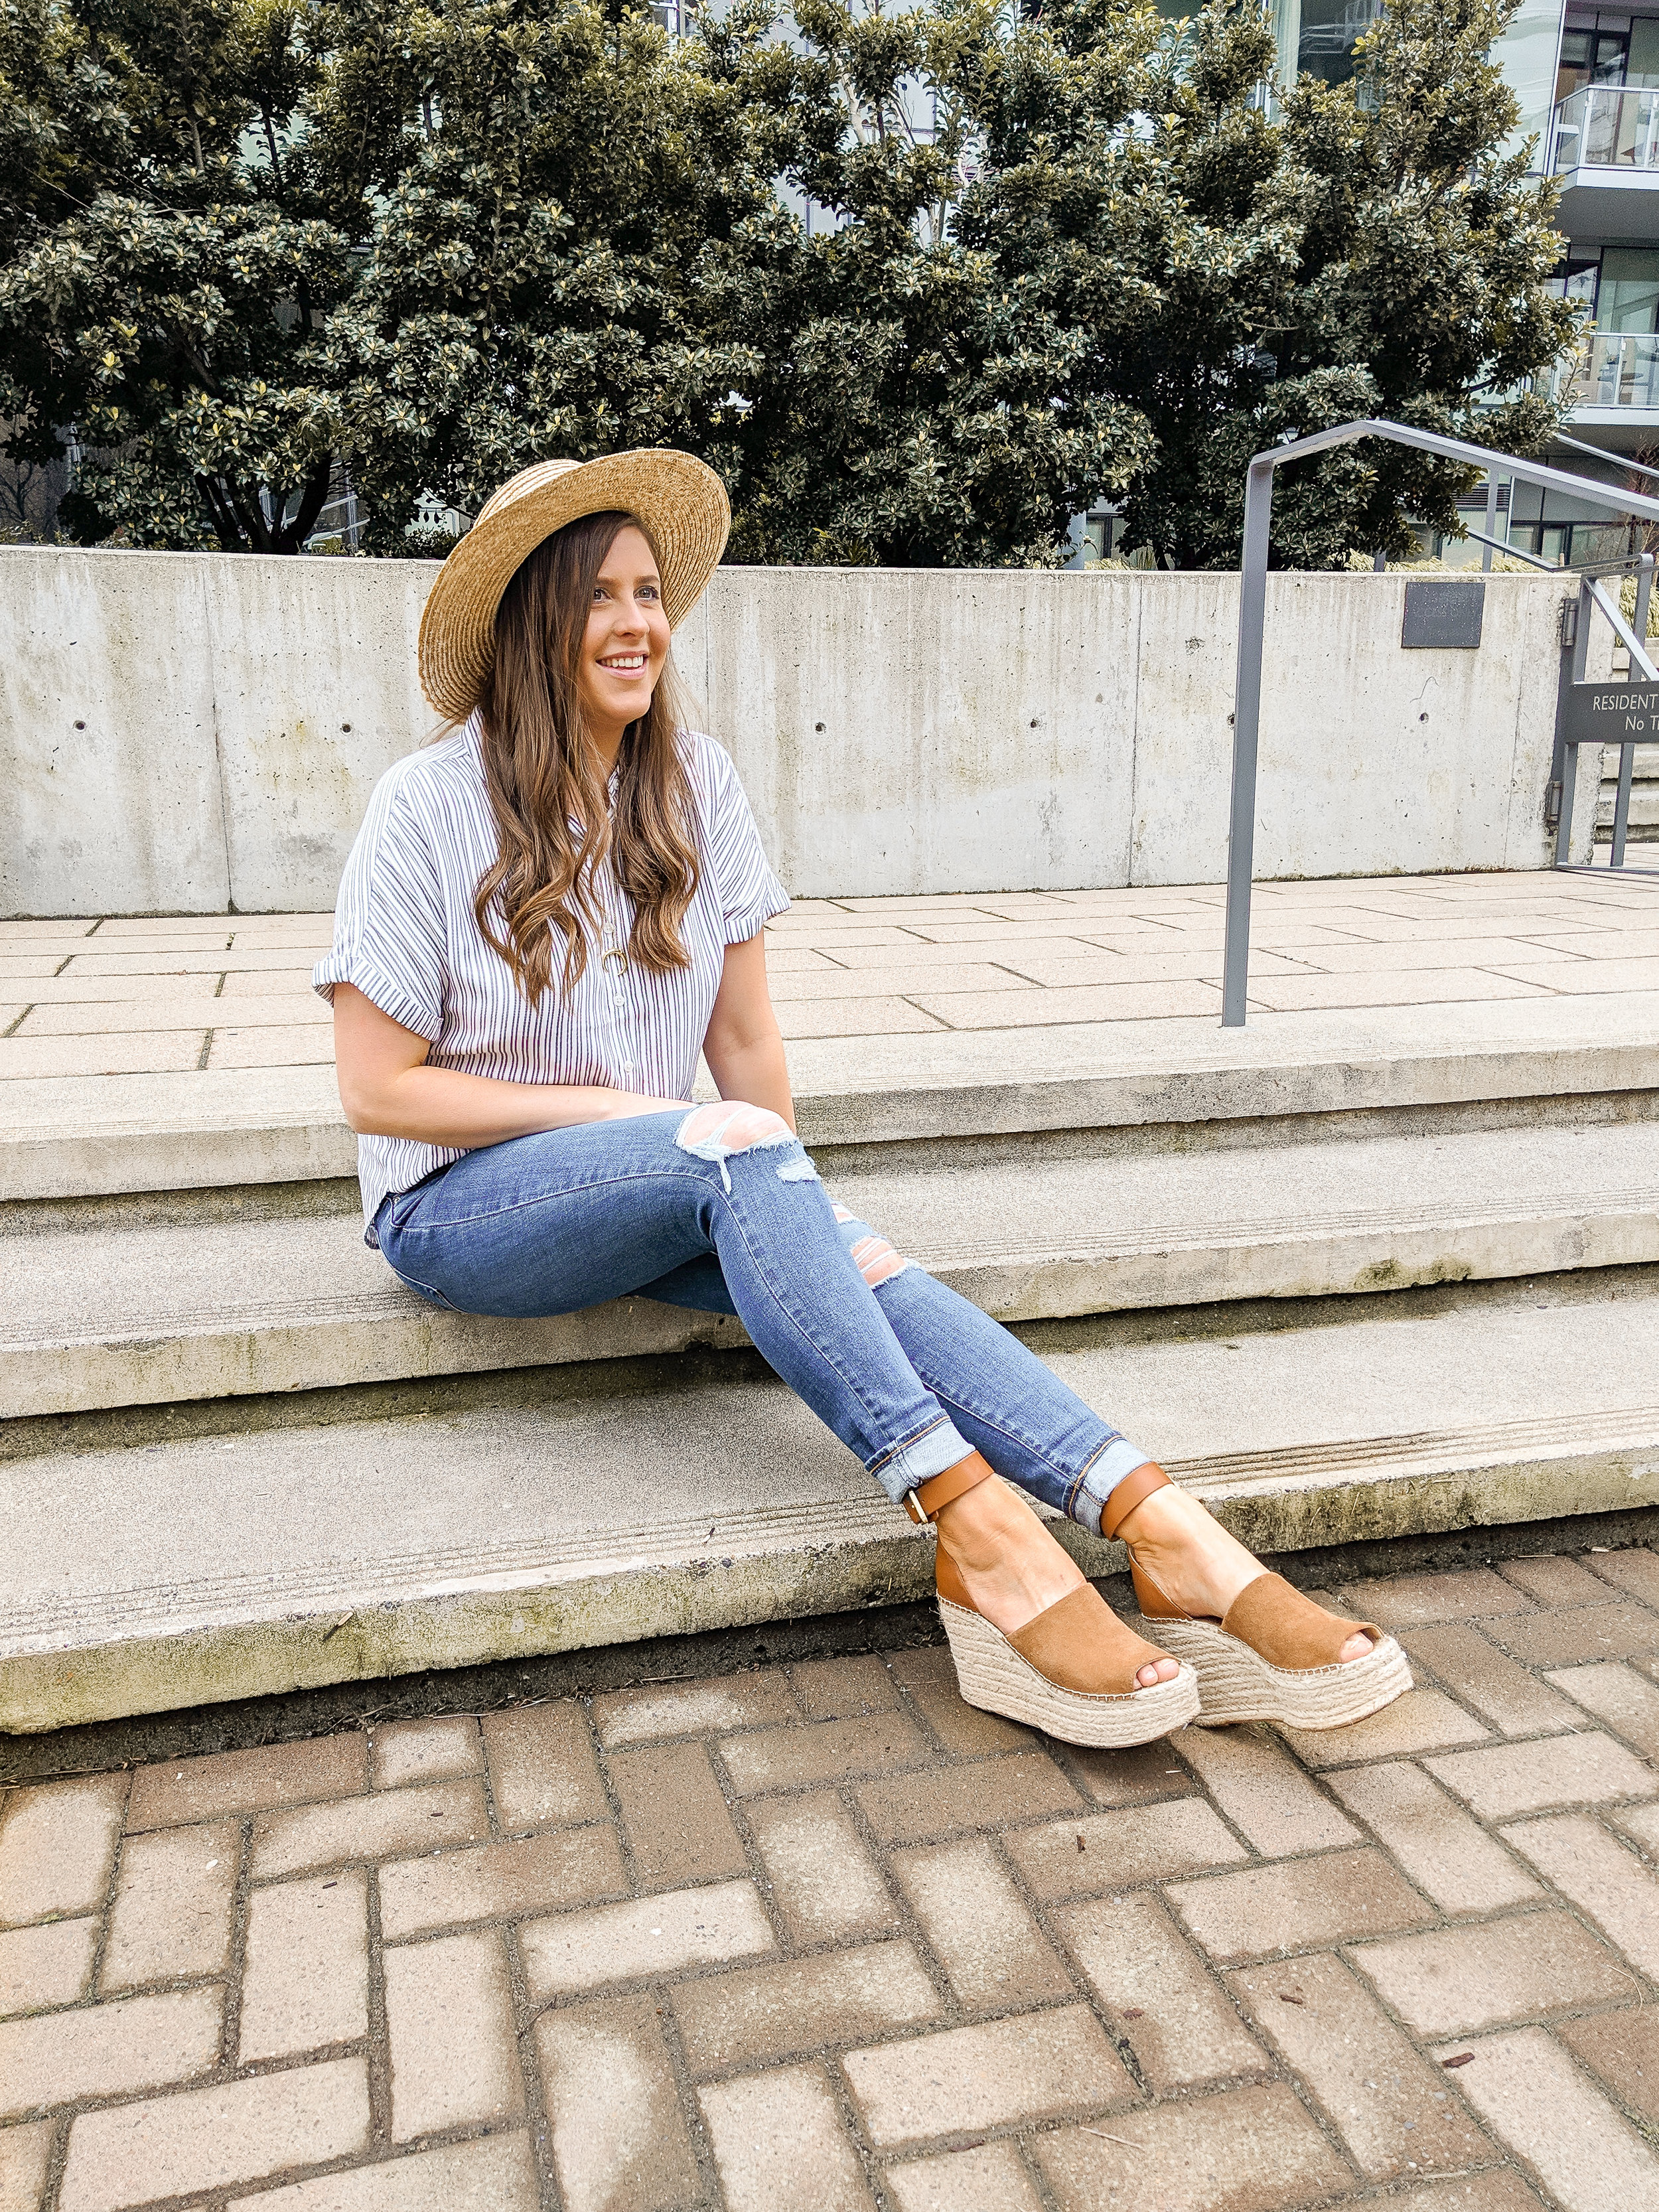 Casual Spring Look Style by Julianne 2019